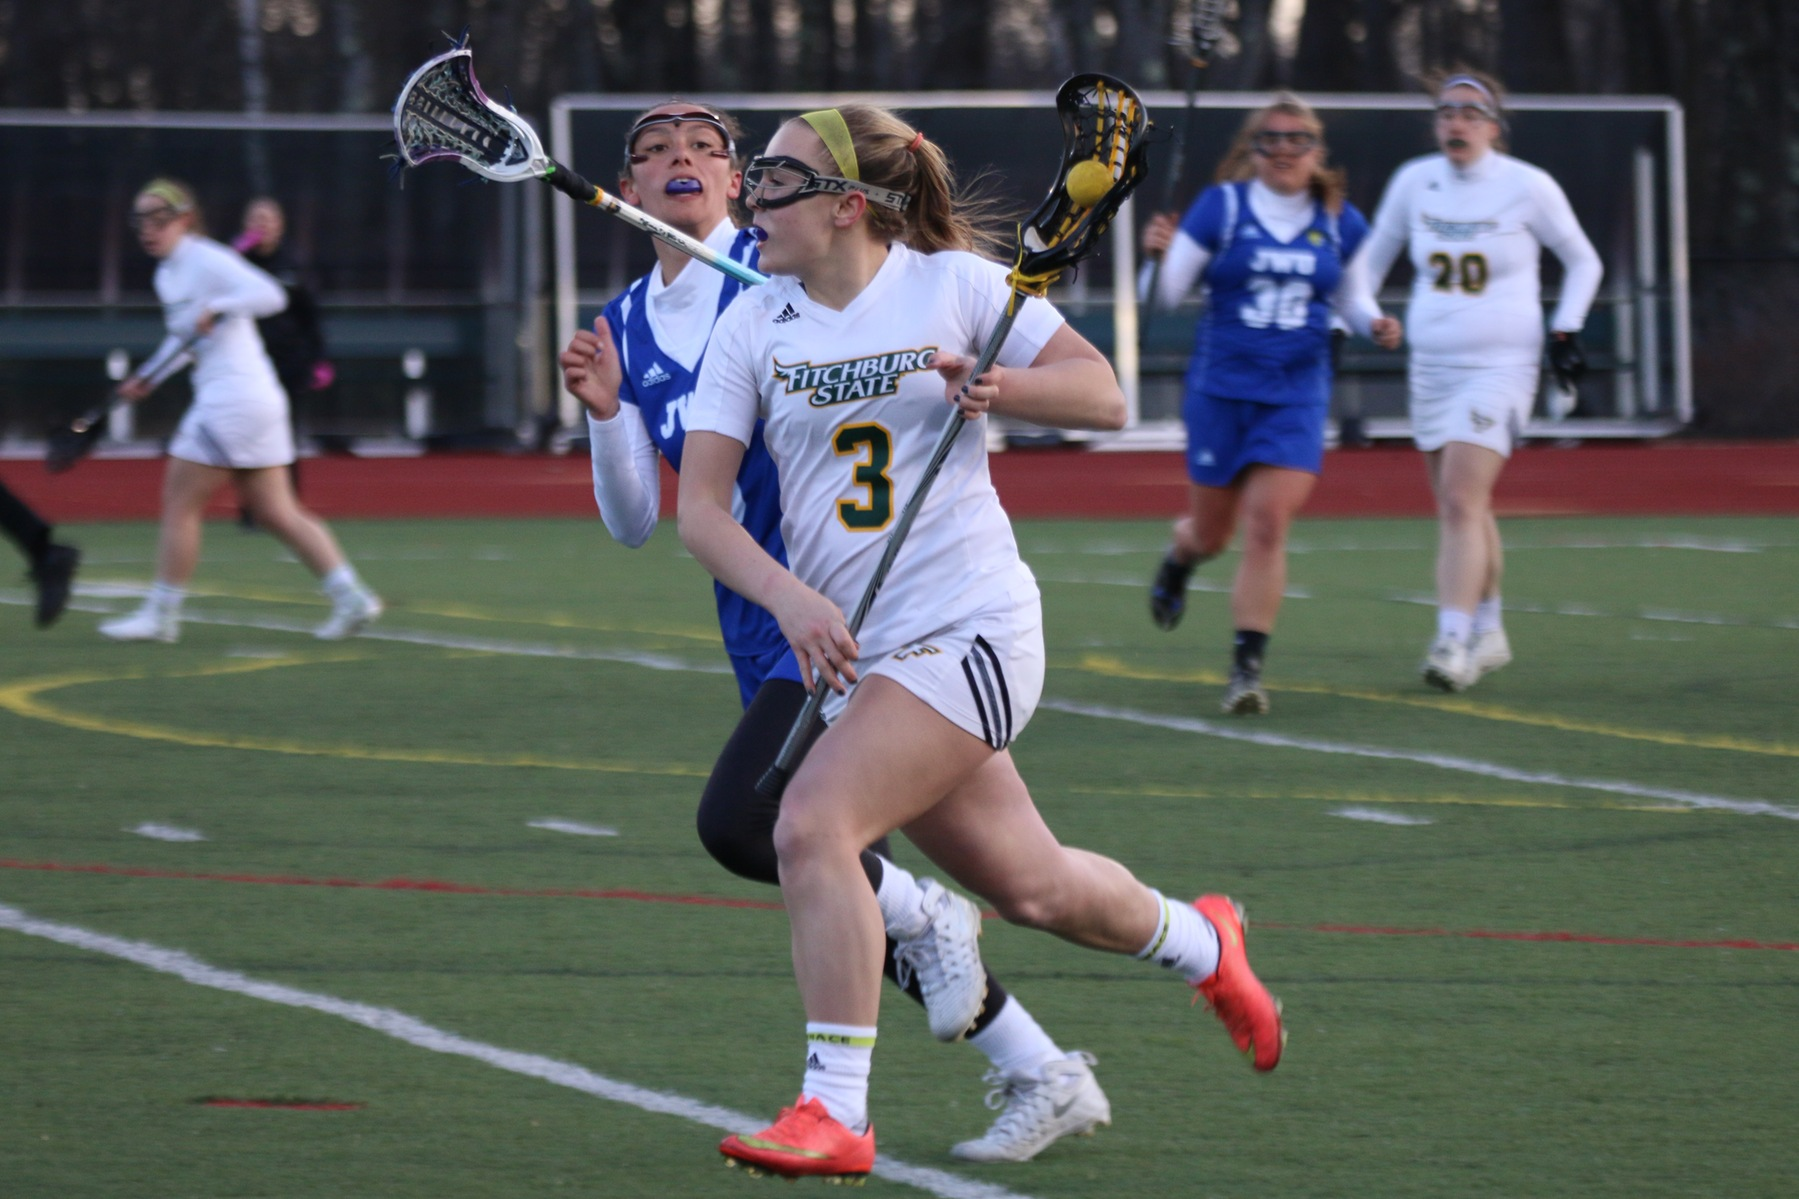 Falcons Soar Past Pride in Lacrosse, 11-7